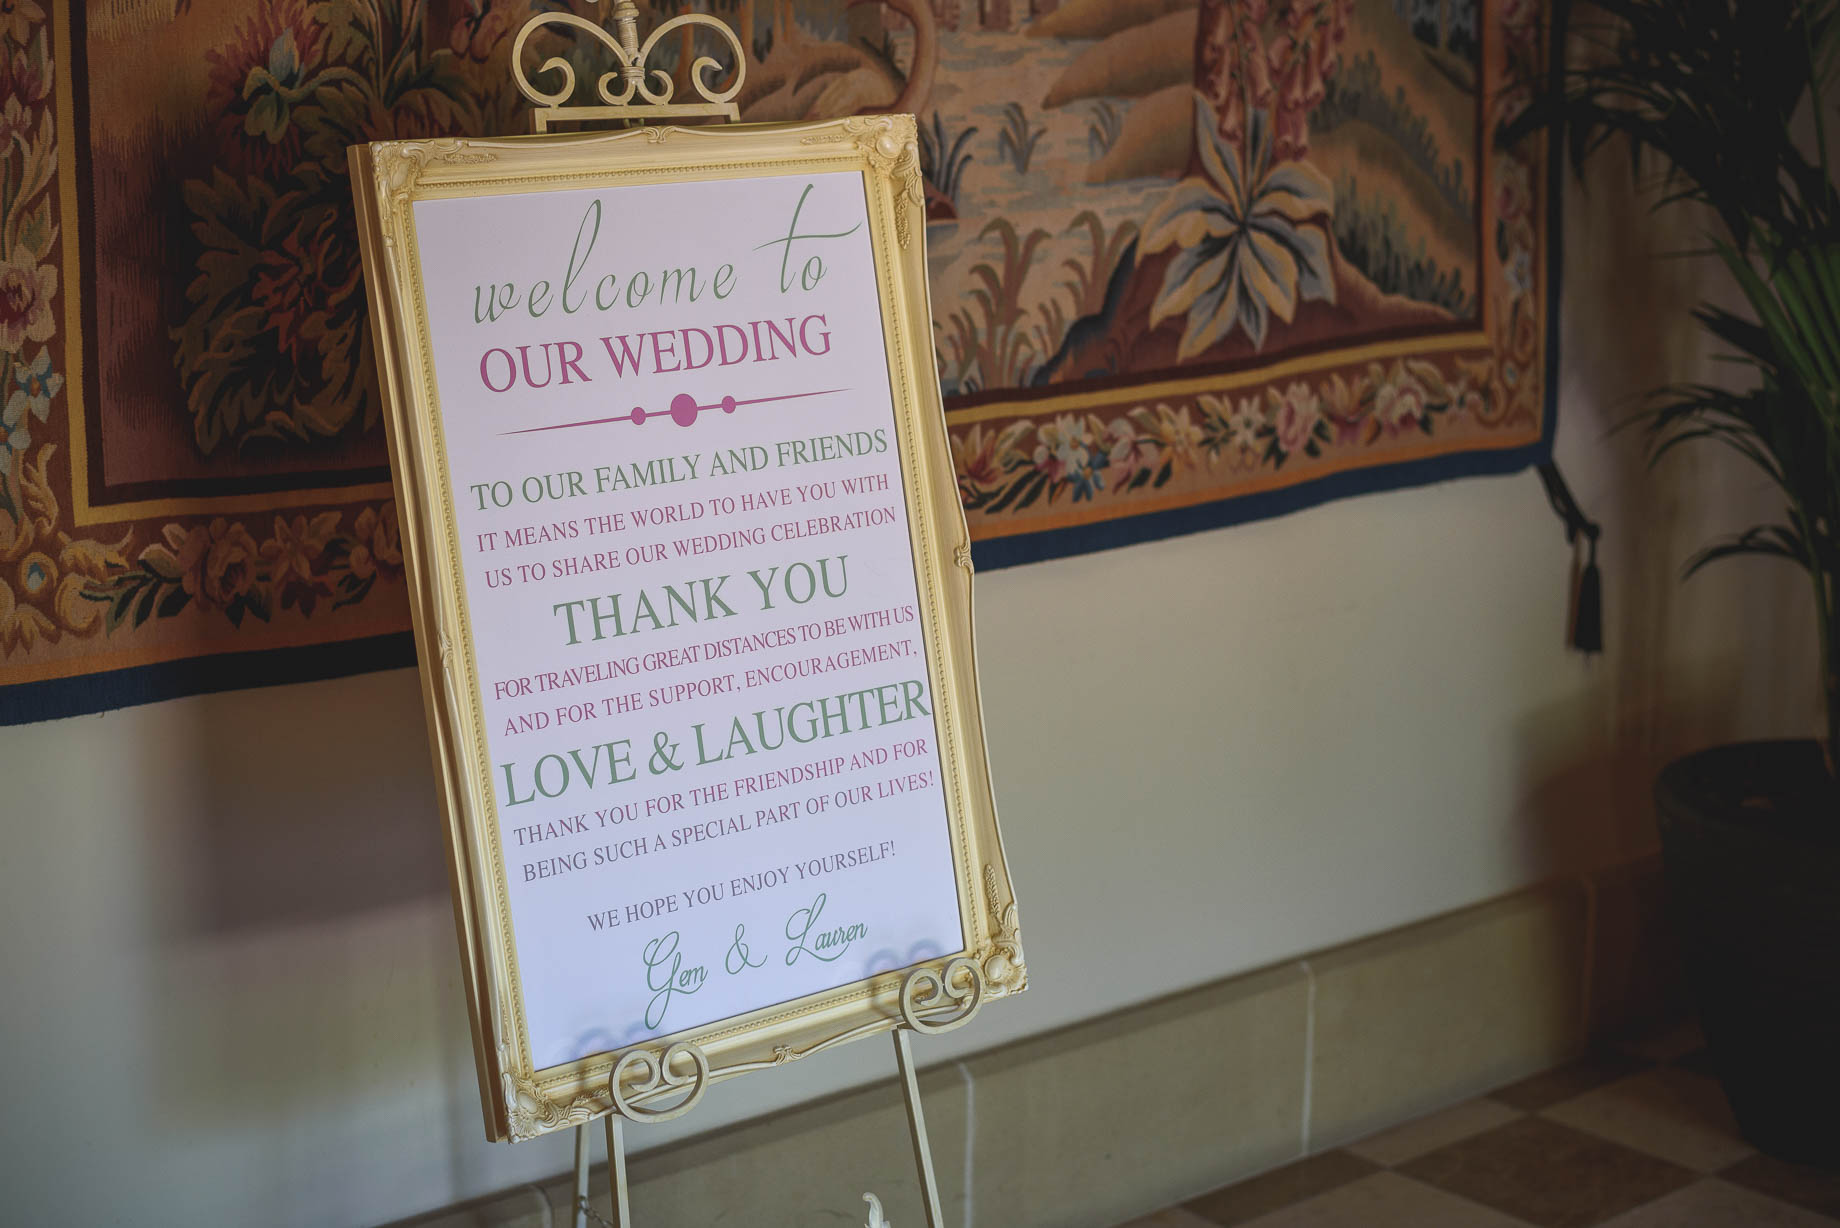 Luton Hoo wedding photography by Guy Collier Photography - Lauren and Gem (88 of 178)